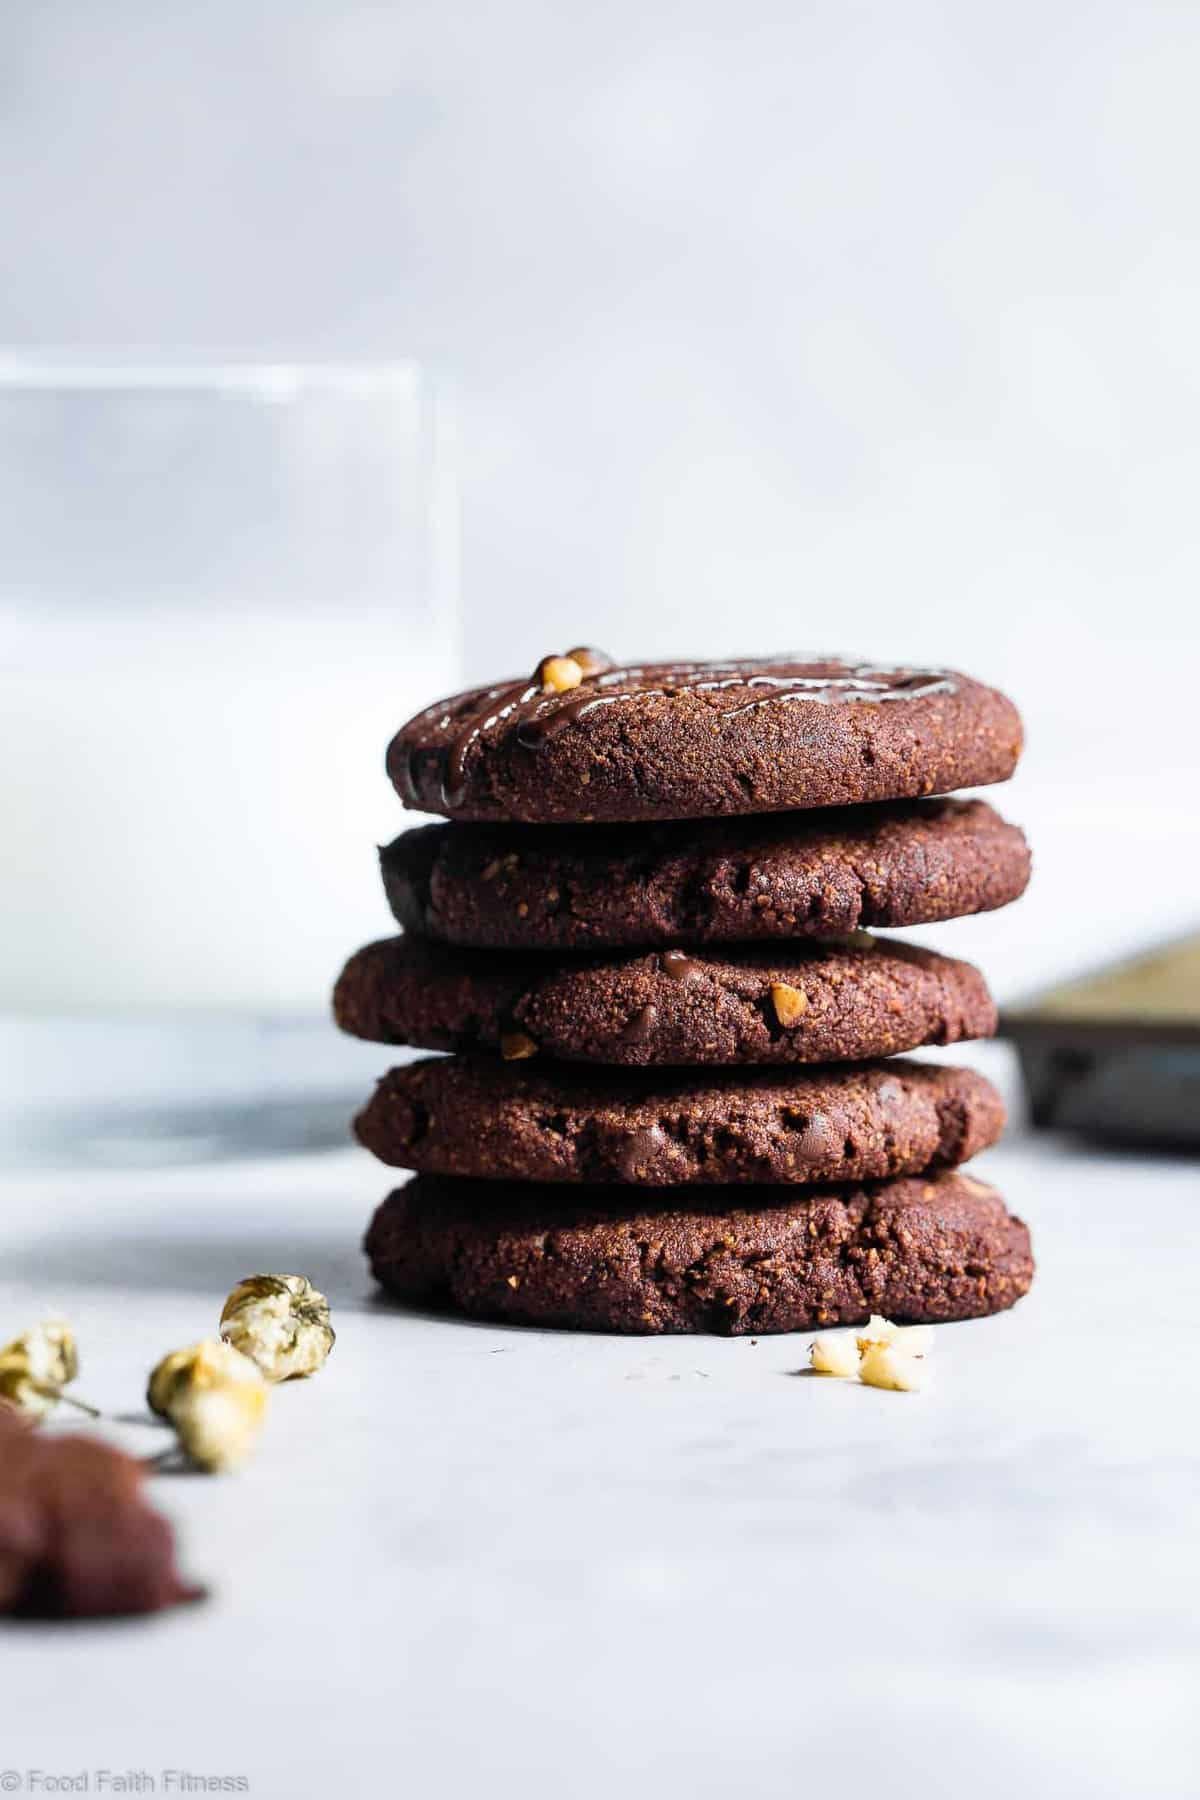 Vegan Gluten Free Brownie Cookies - These healthy and gluten free Chocolate Brownie Cookies are like always getting the edge piece - SO dense and chewy! You won't believe they're gluten free, paleo and only 120 calories! | #Foodfaithfitness | #Vegan #Paleo #Glutenfree #Dairyfree #Healthy